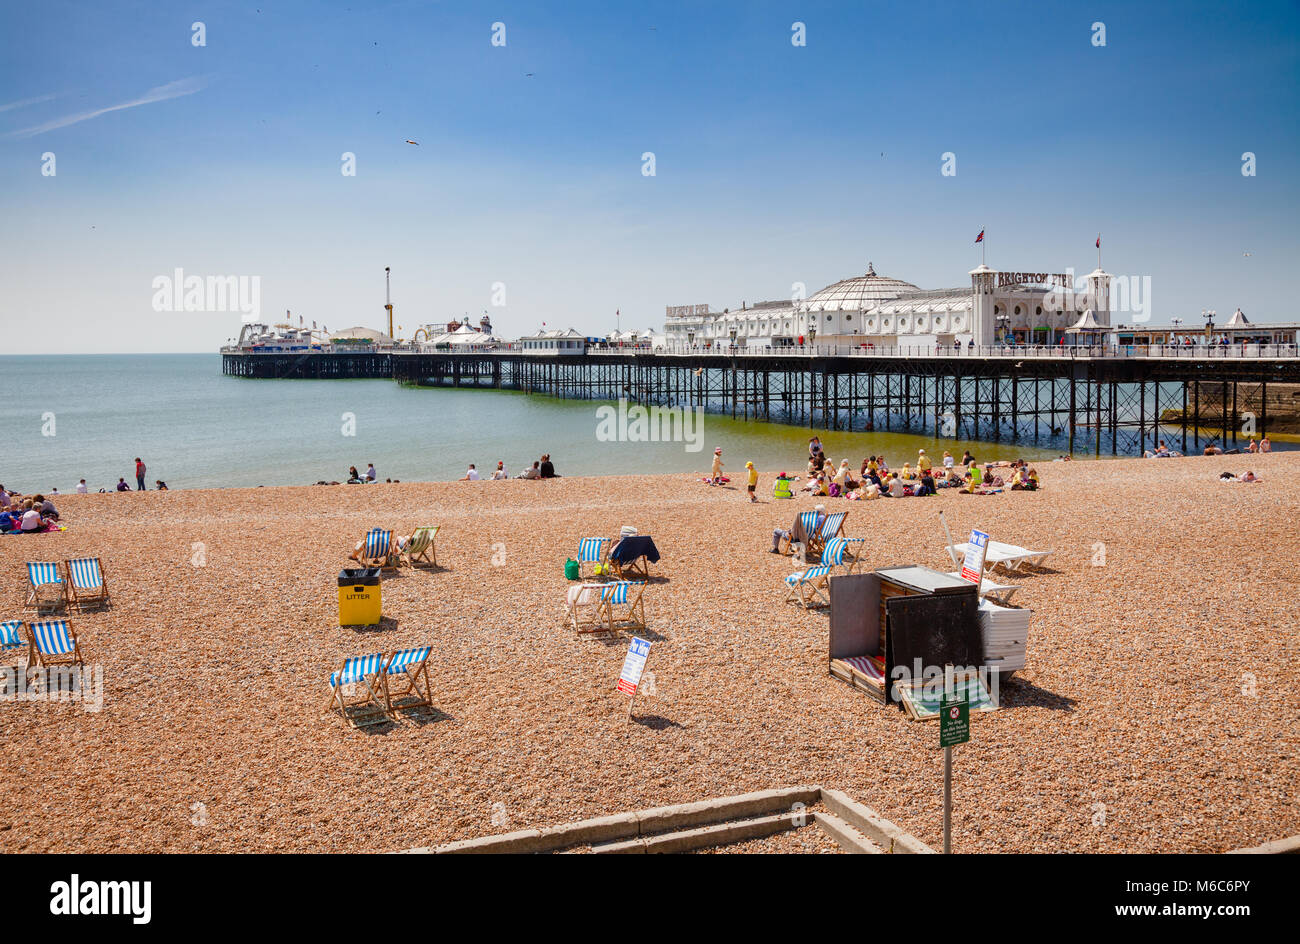 BRIGHTON, UK - JUN 5, 2013: Holidayers enjoying good summer weather at shingle beach near the Brighton Palace Pier - Stock Image